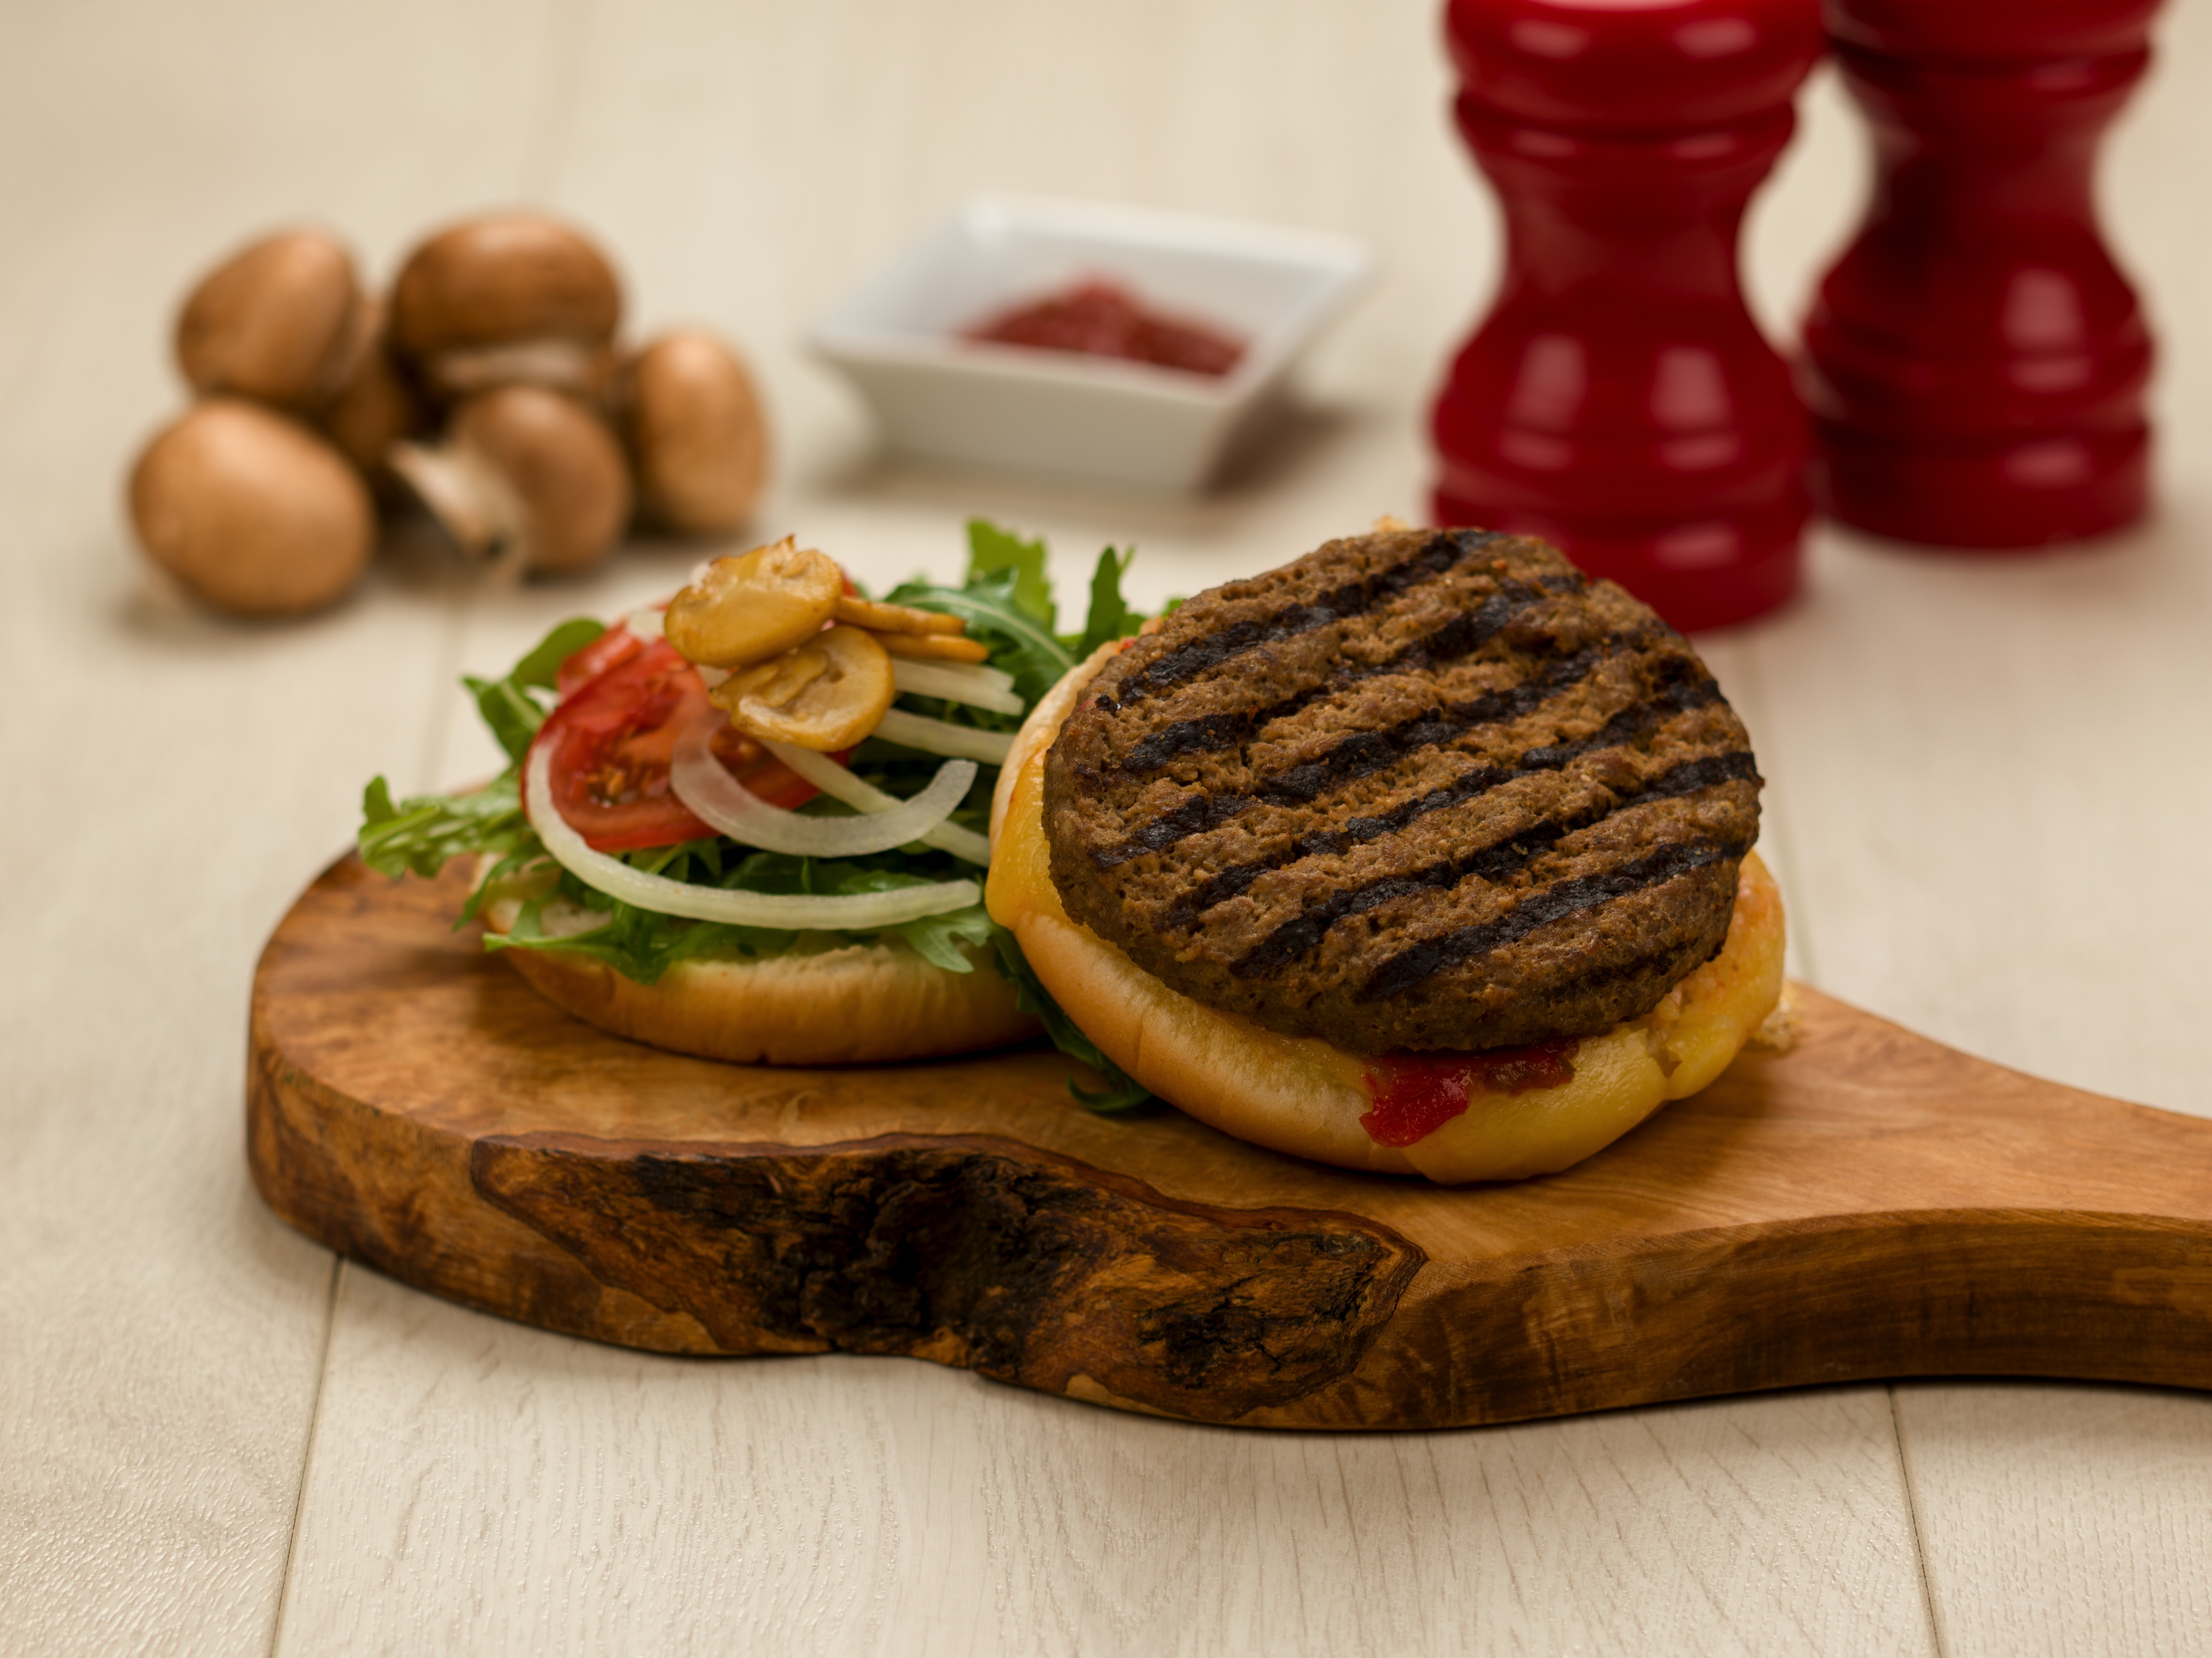 Cooked Chargrilled Beef Burger